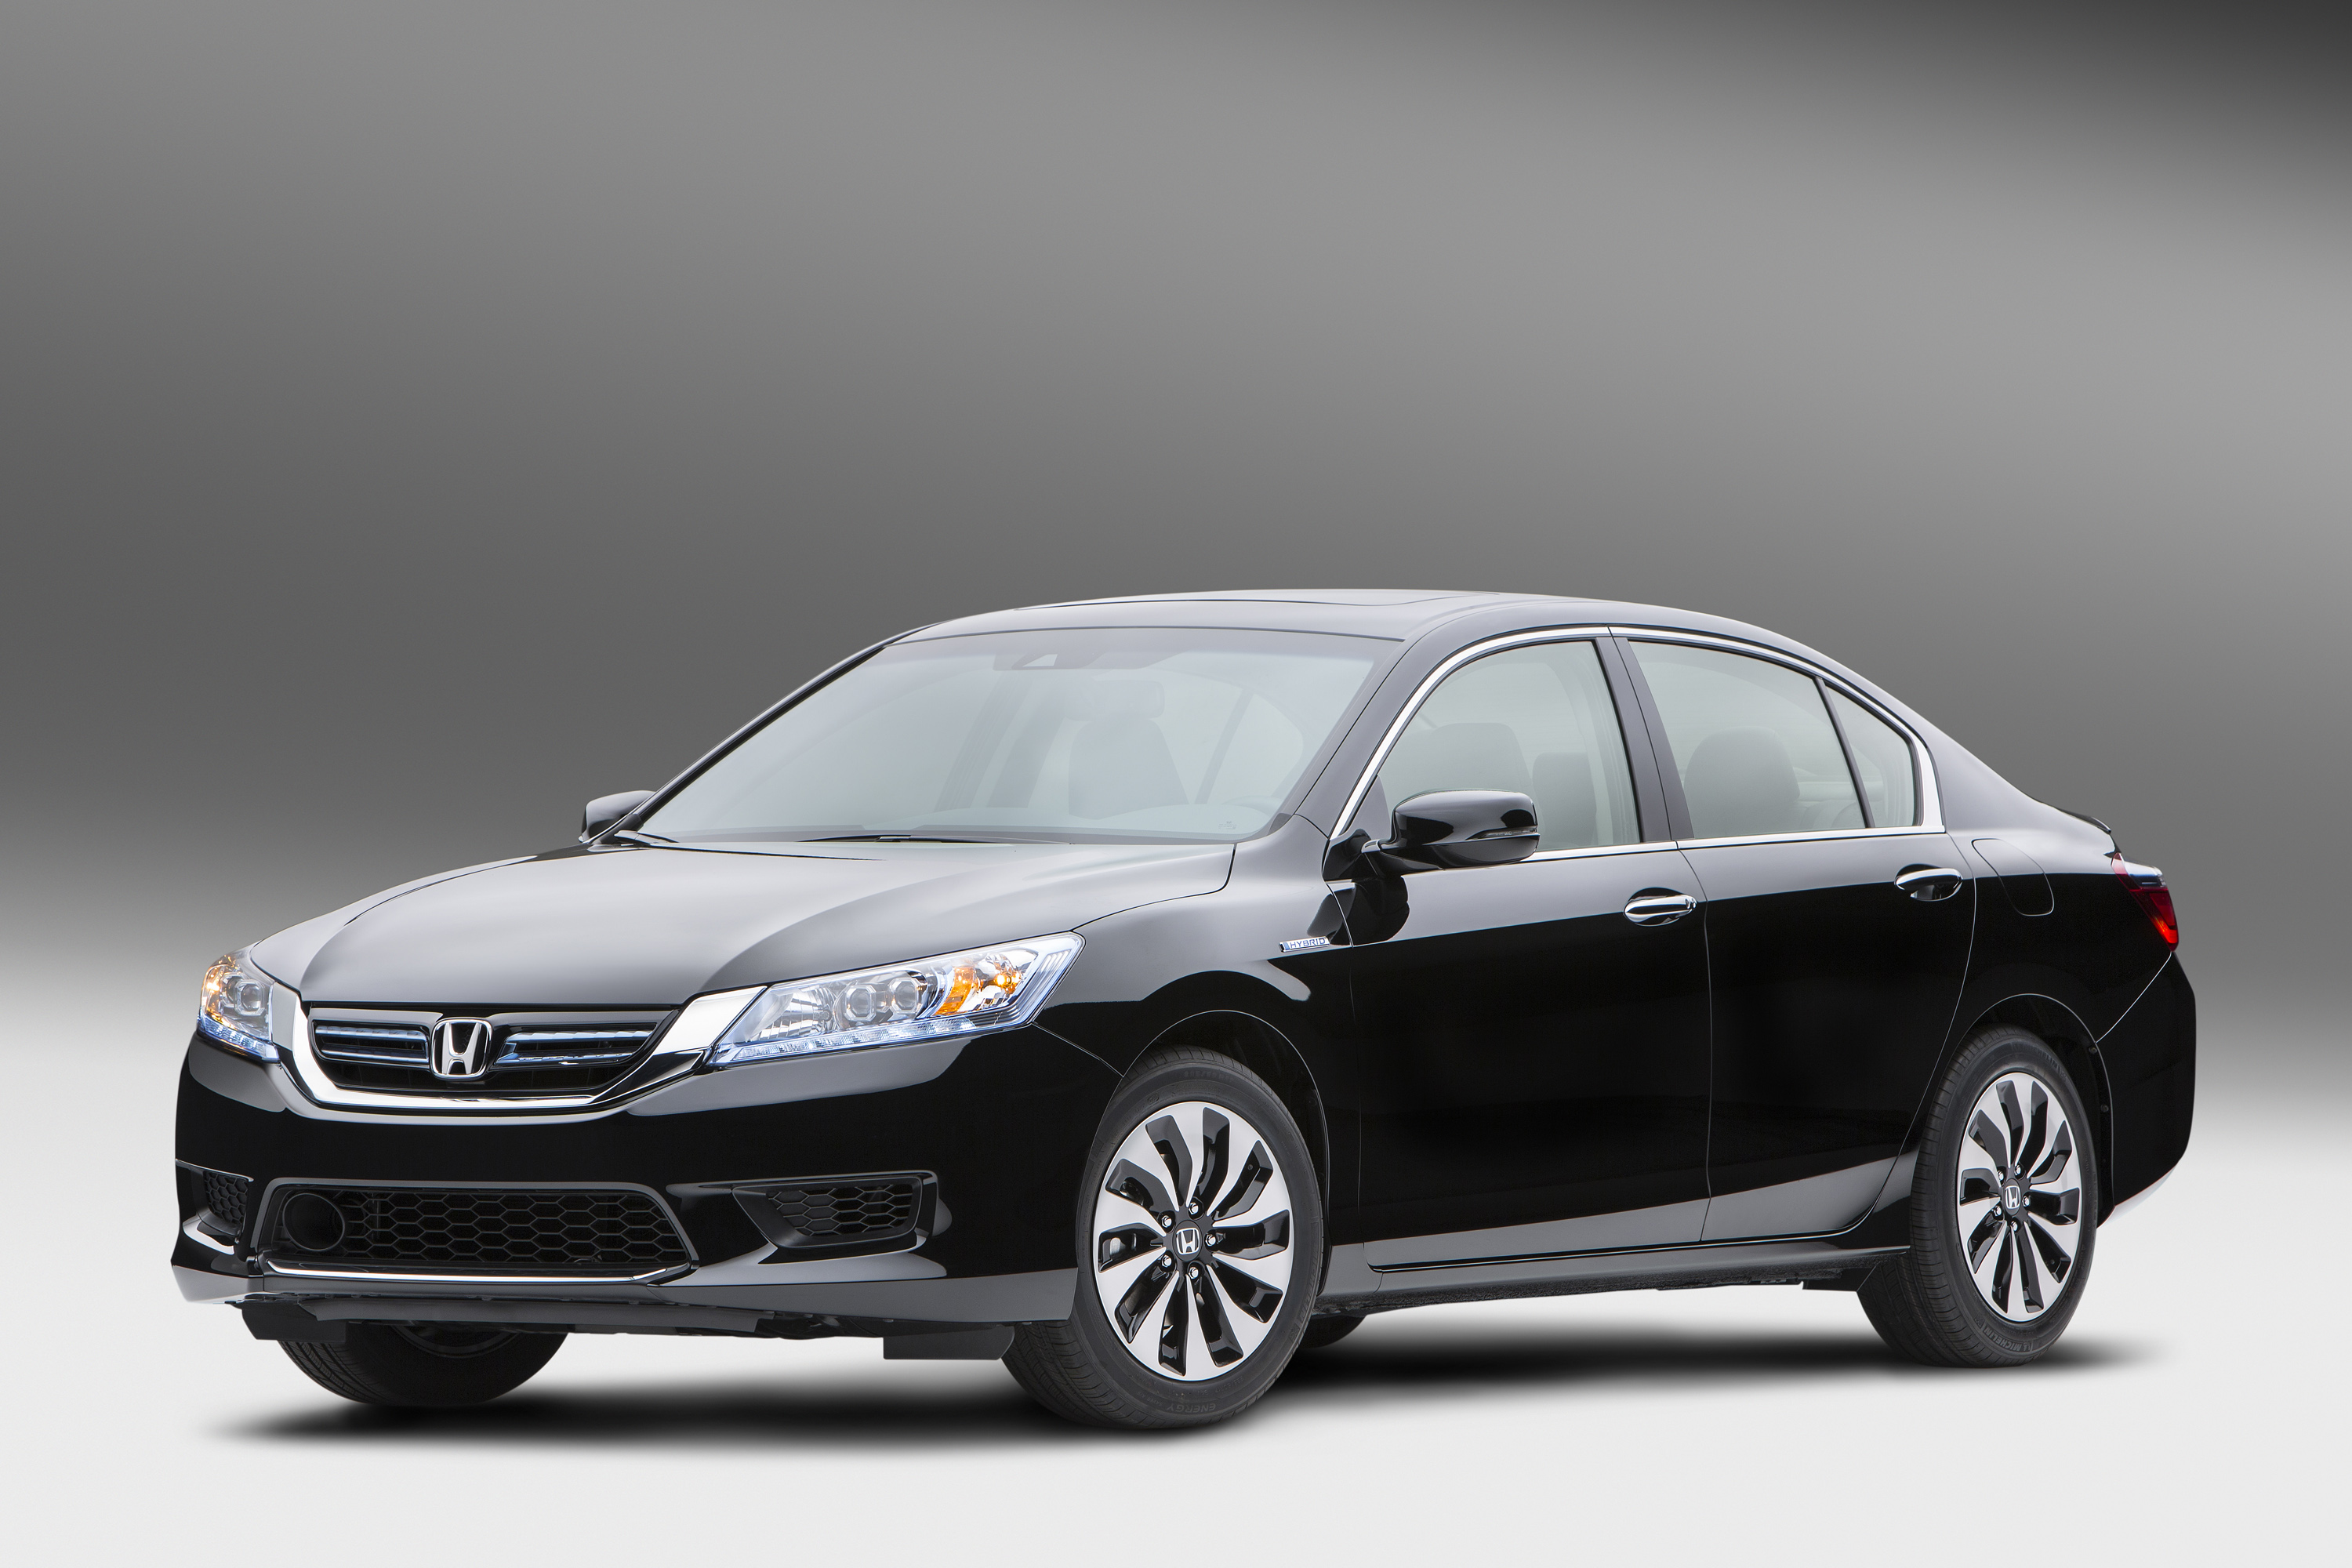 blue interior price unveil car honda revealed accord kelley the latest all kbb news torrance book